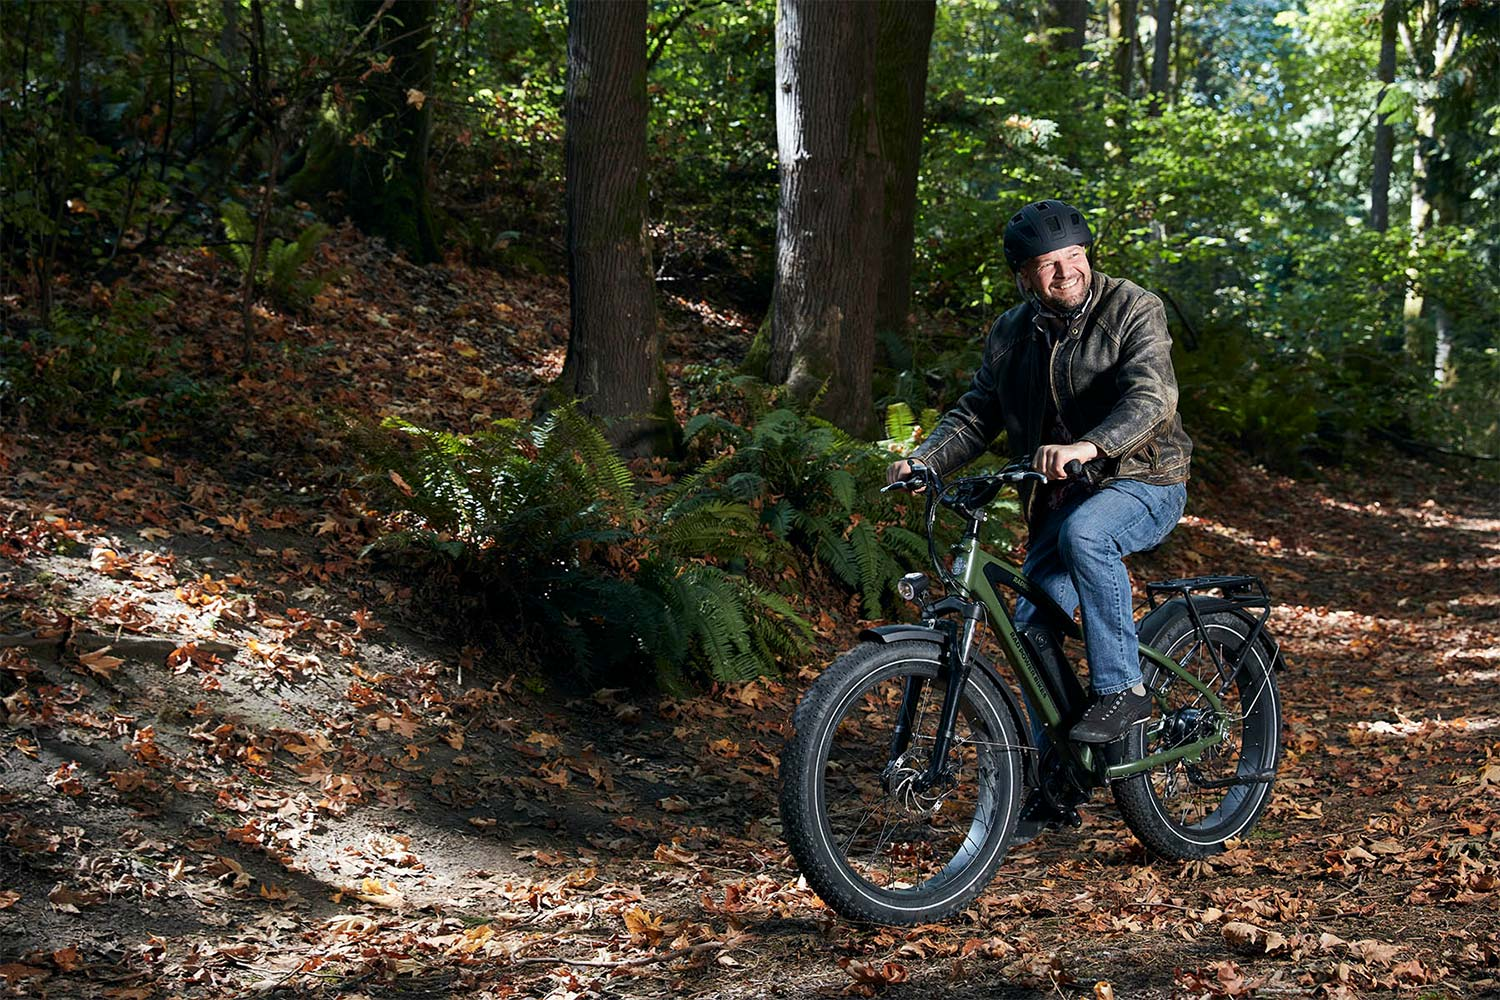 Riding the fat tire bike in forest